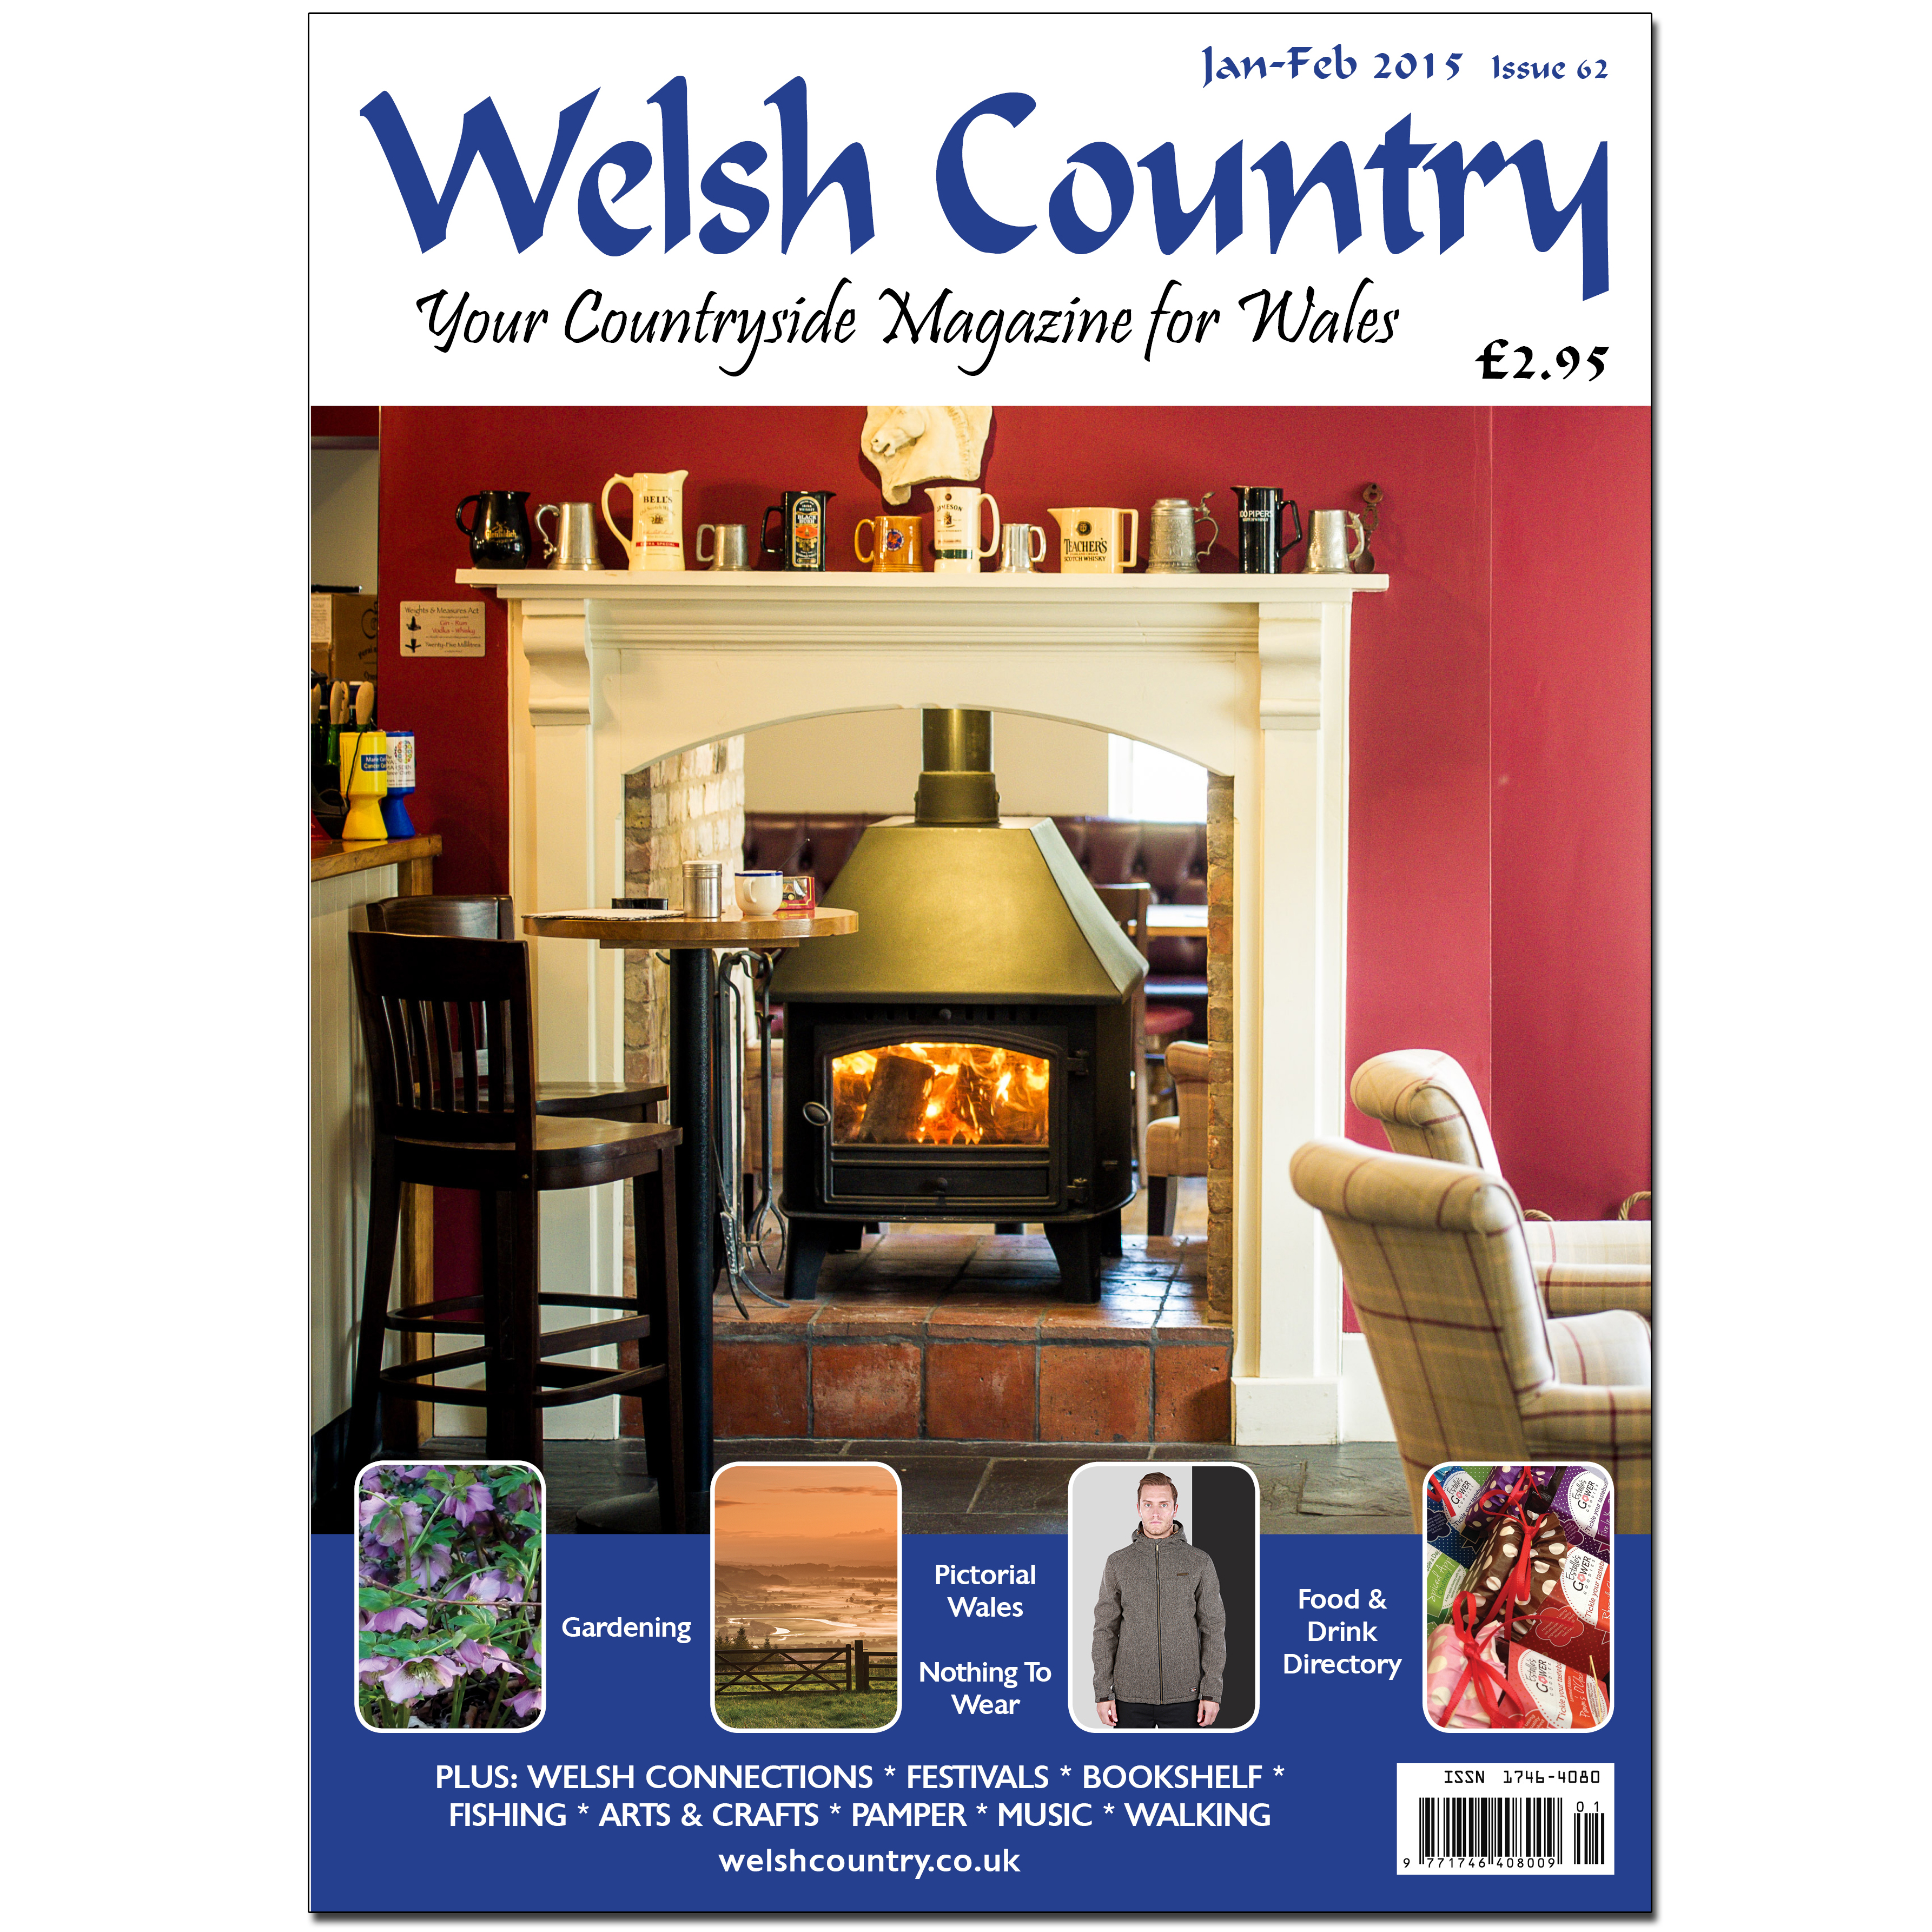 Welsh Country Magazine Jan Feb 15